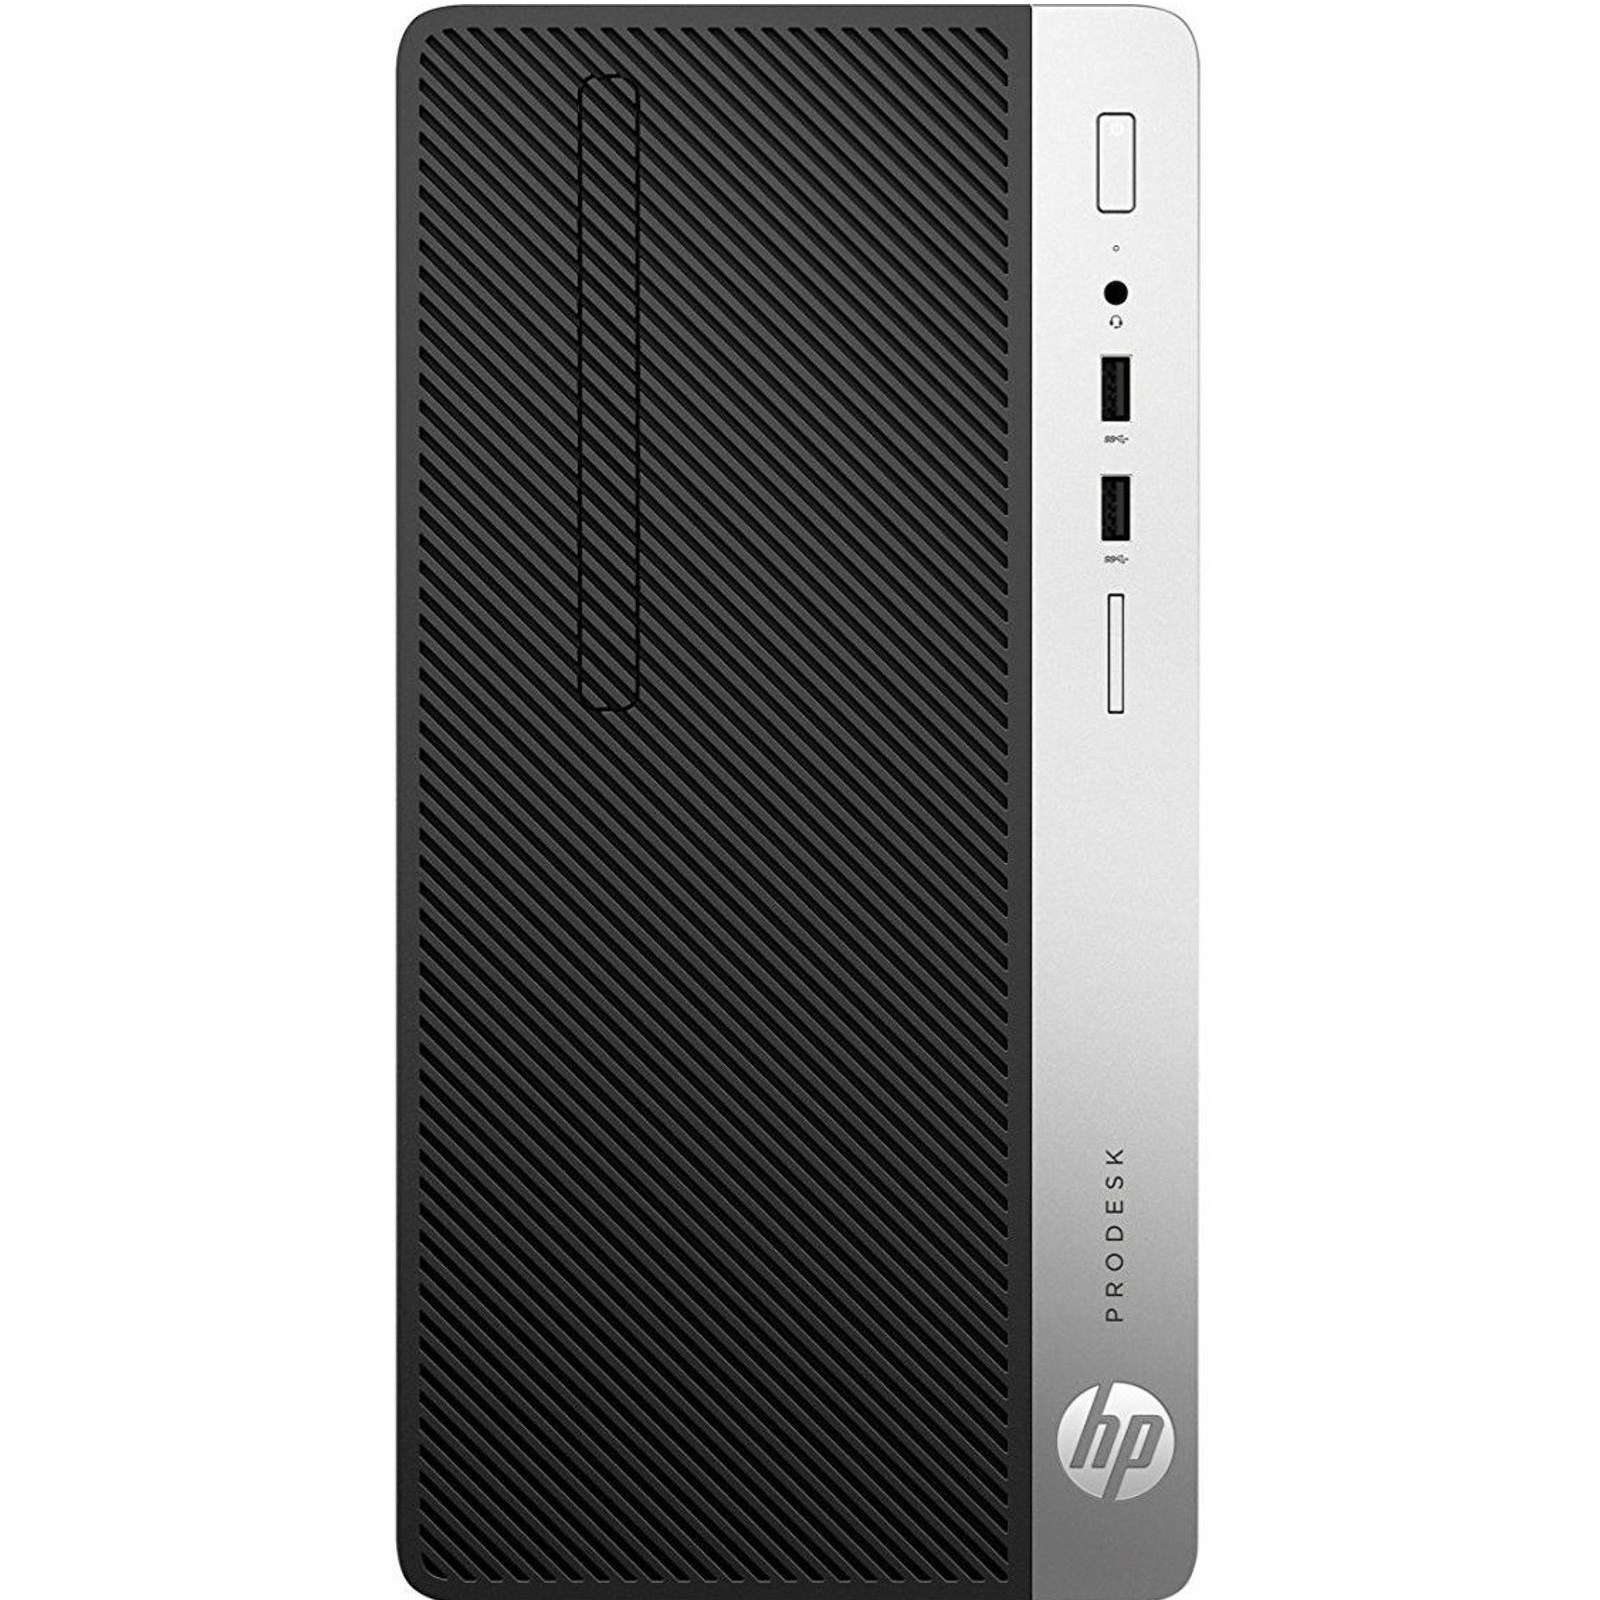 HP PRODESK 400MT 1JJ87EA I5-7500 4GB 1TB O/B INTEL HD GRAPHICS 630 DVD/RW FREEDOS DESKTOP PC